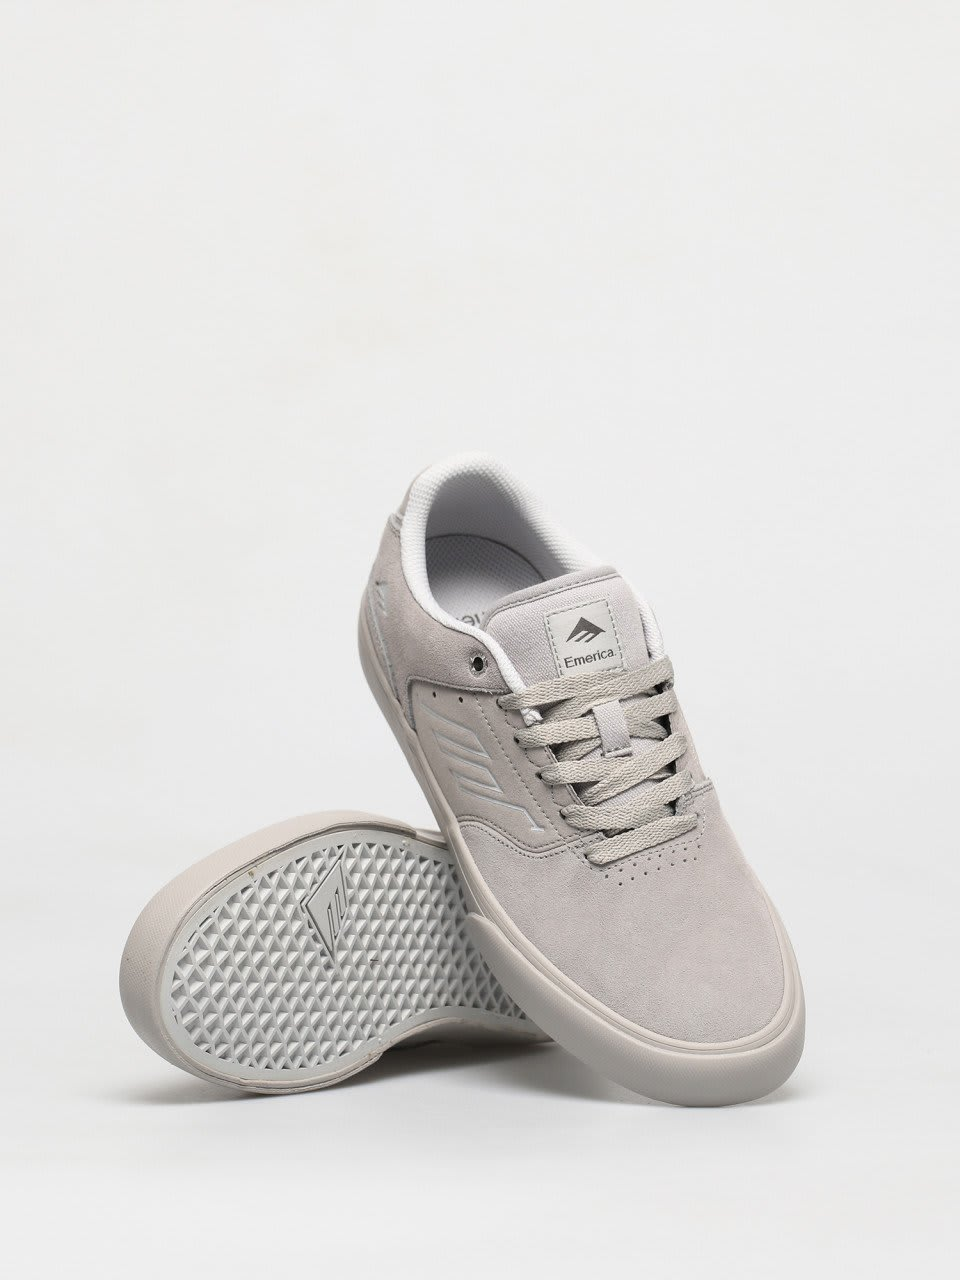 Emerica The Low Vulc Skate Shoes - Grey | Shoes by Emerica 3